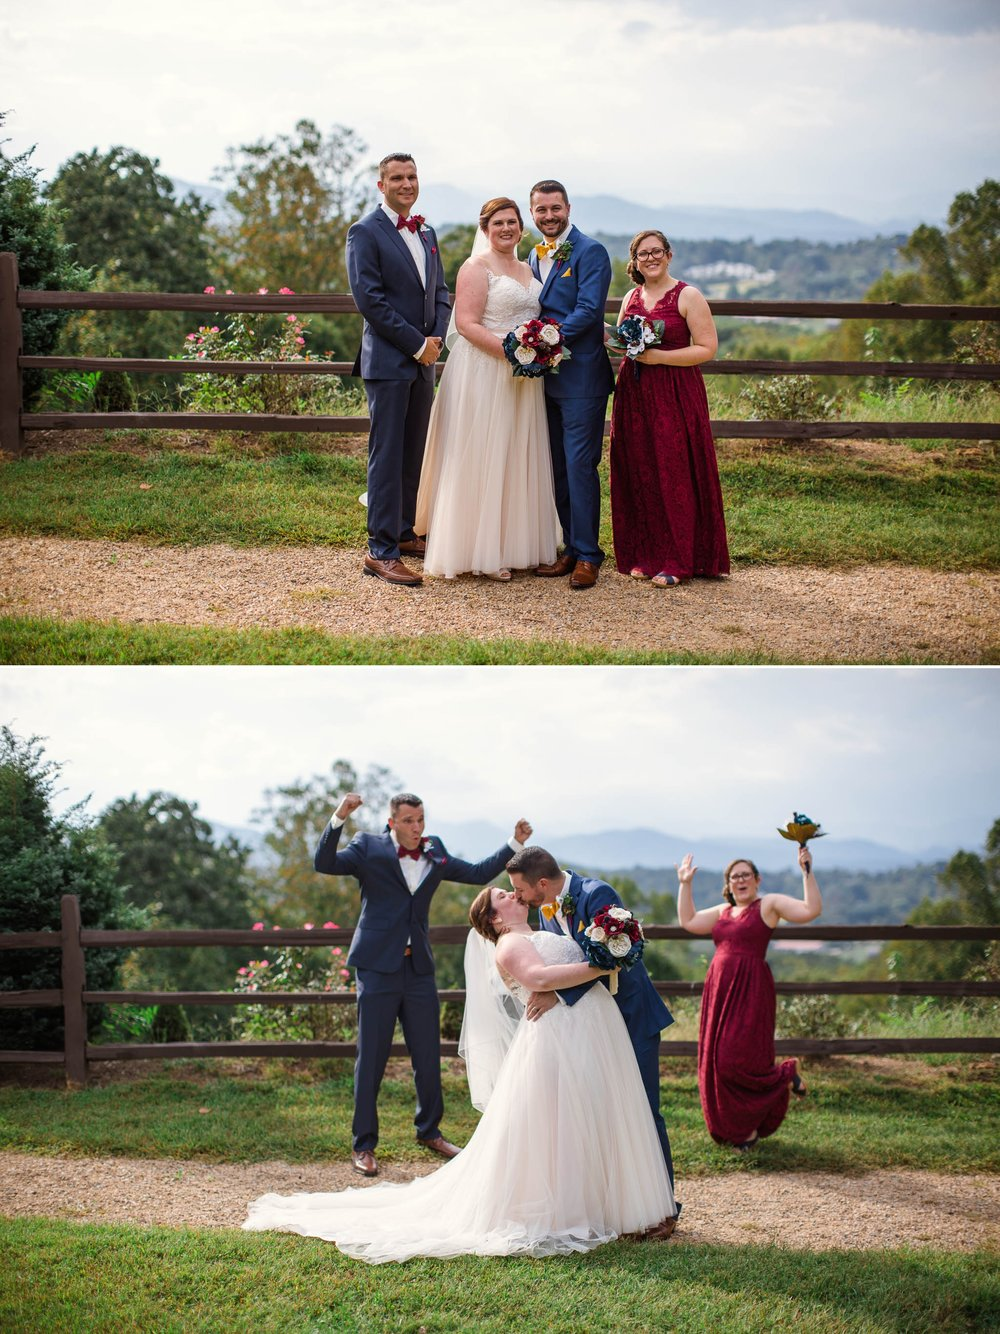 Portrait of the Wedding Party - Meredith + Jason - The Crest Center and Pavilion in Asheville, NC - Raleigh Wedding Photographer